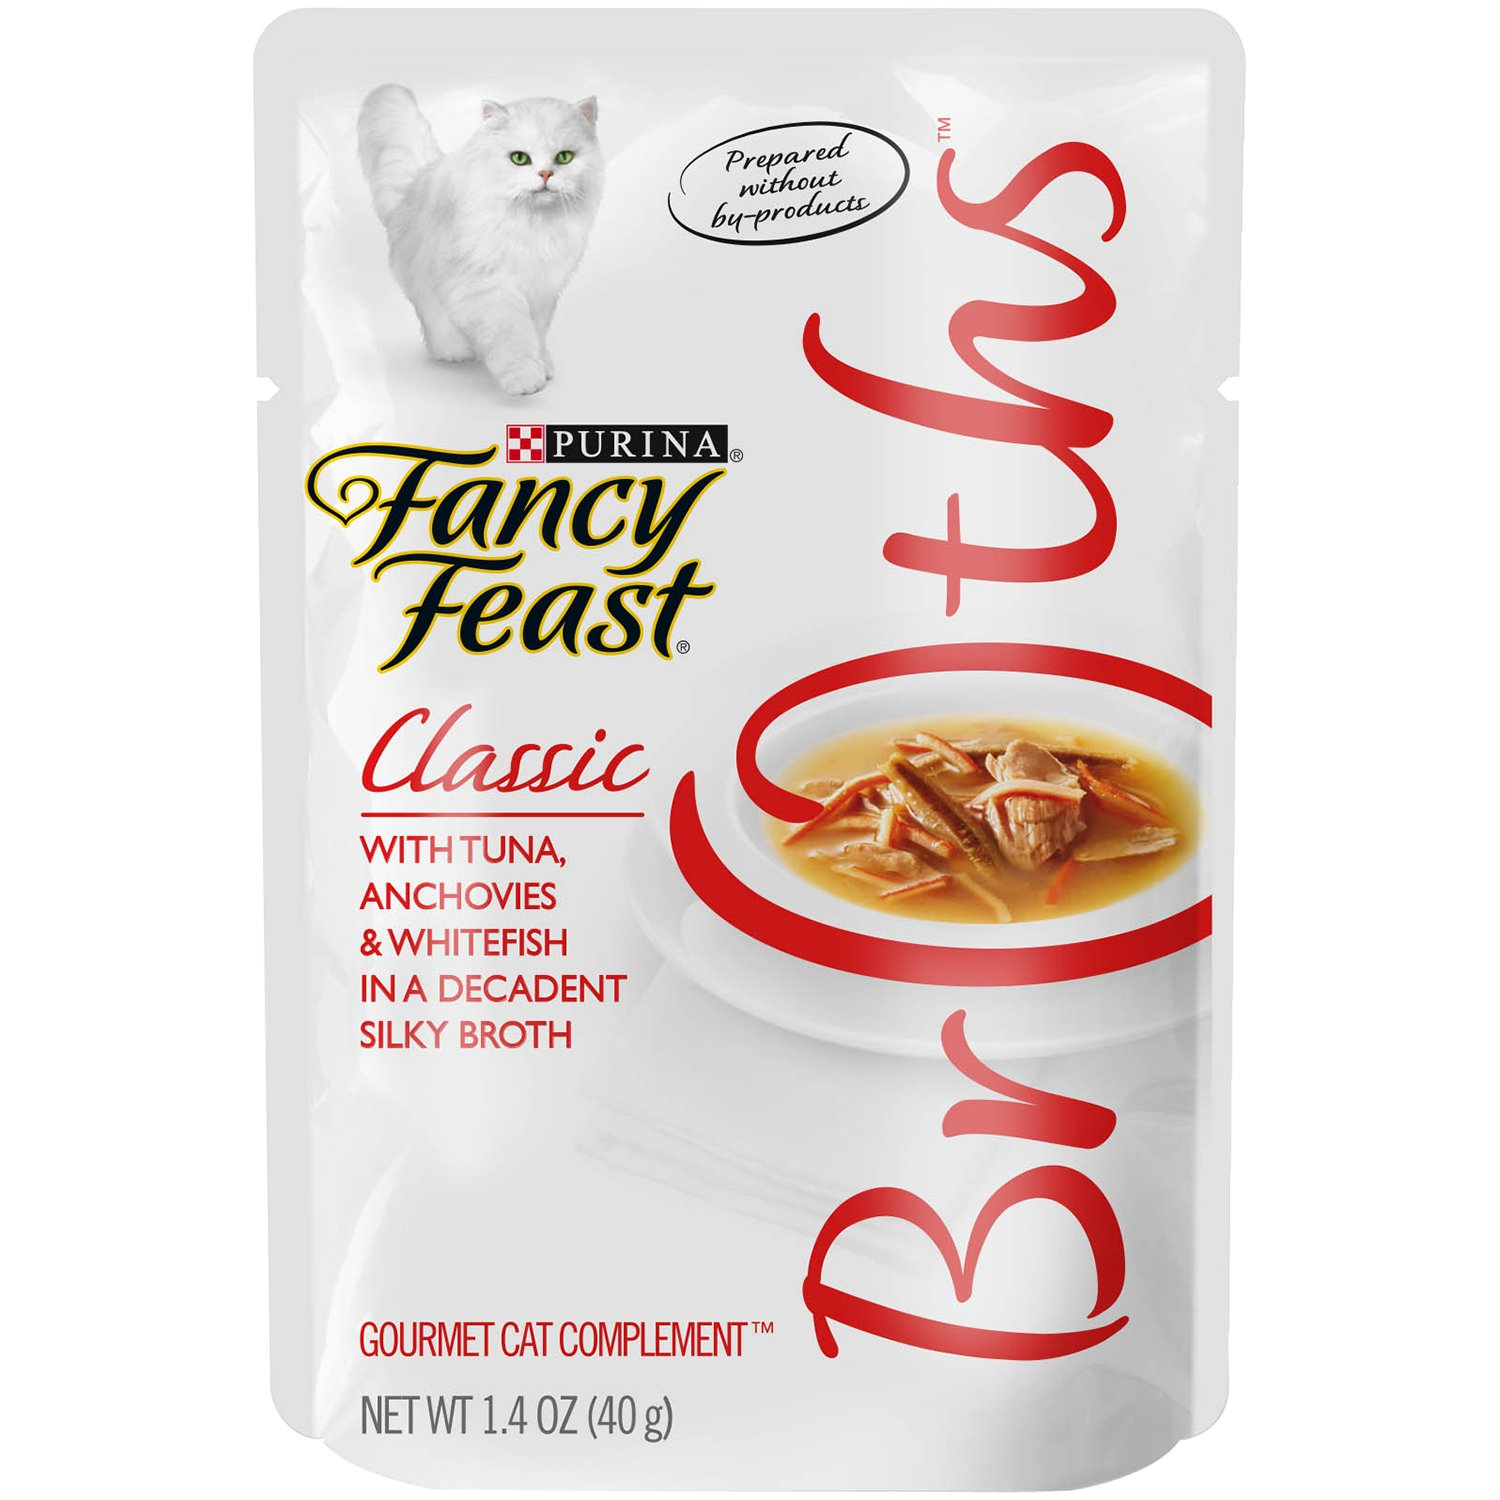 Purina Fancy Feast Classic With Tuna Anchovies & Whitefish Cat Food - (32) 1.4 Oz. Pouch by Purina Fancy Feast